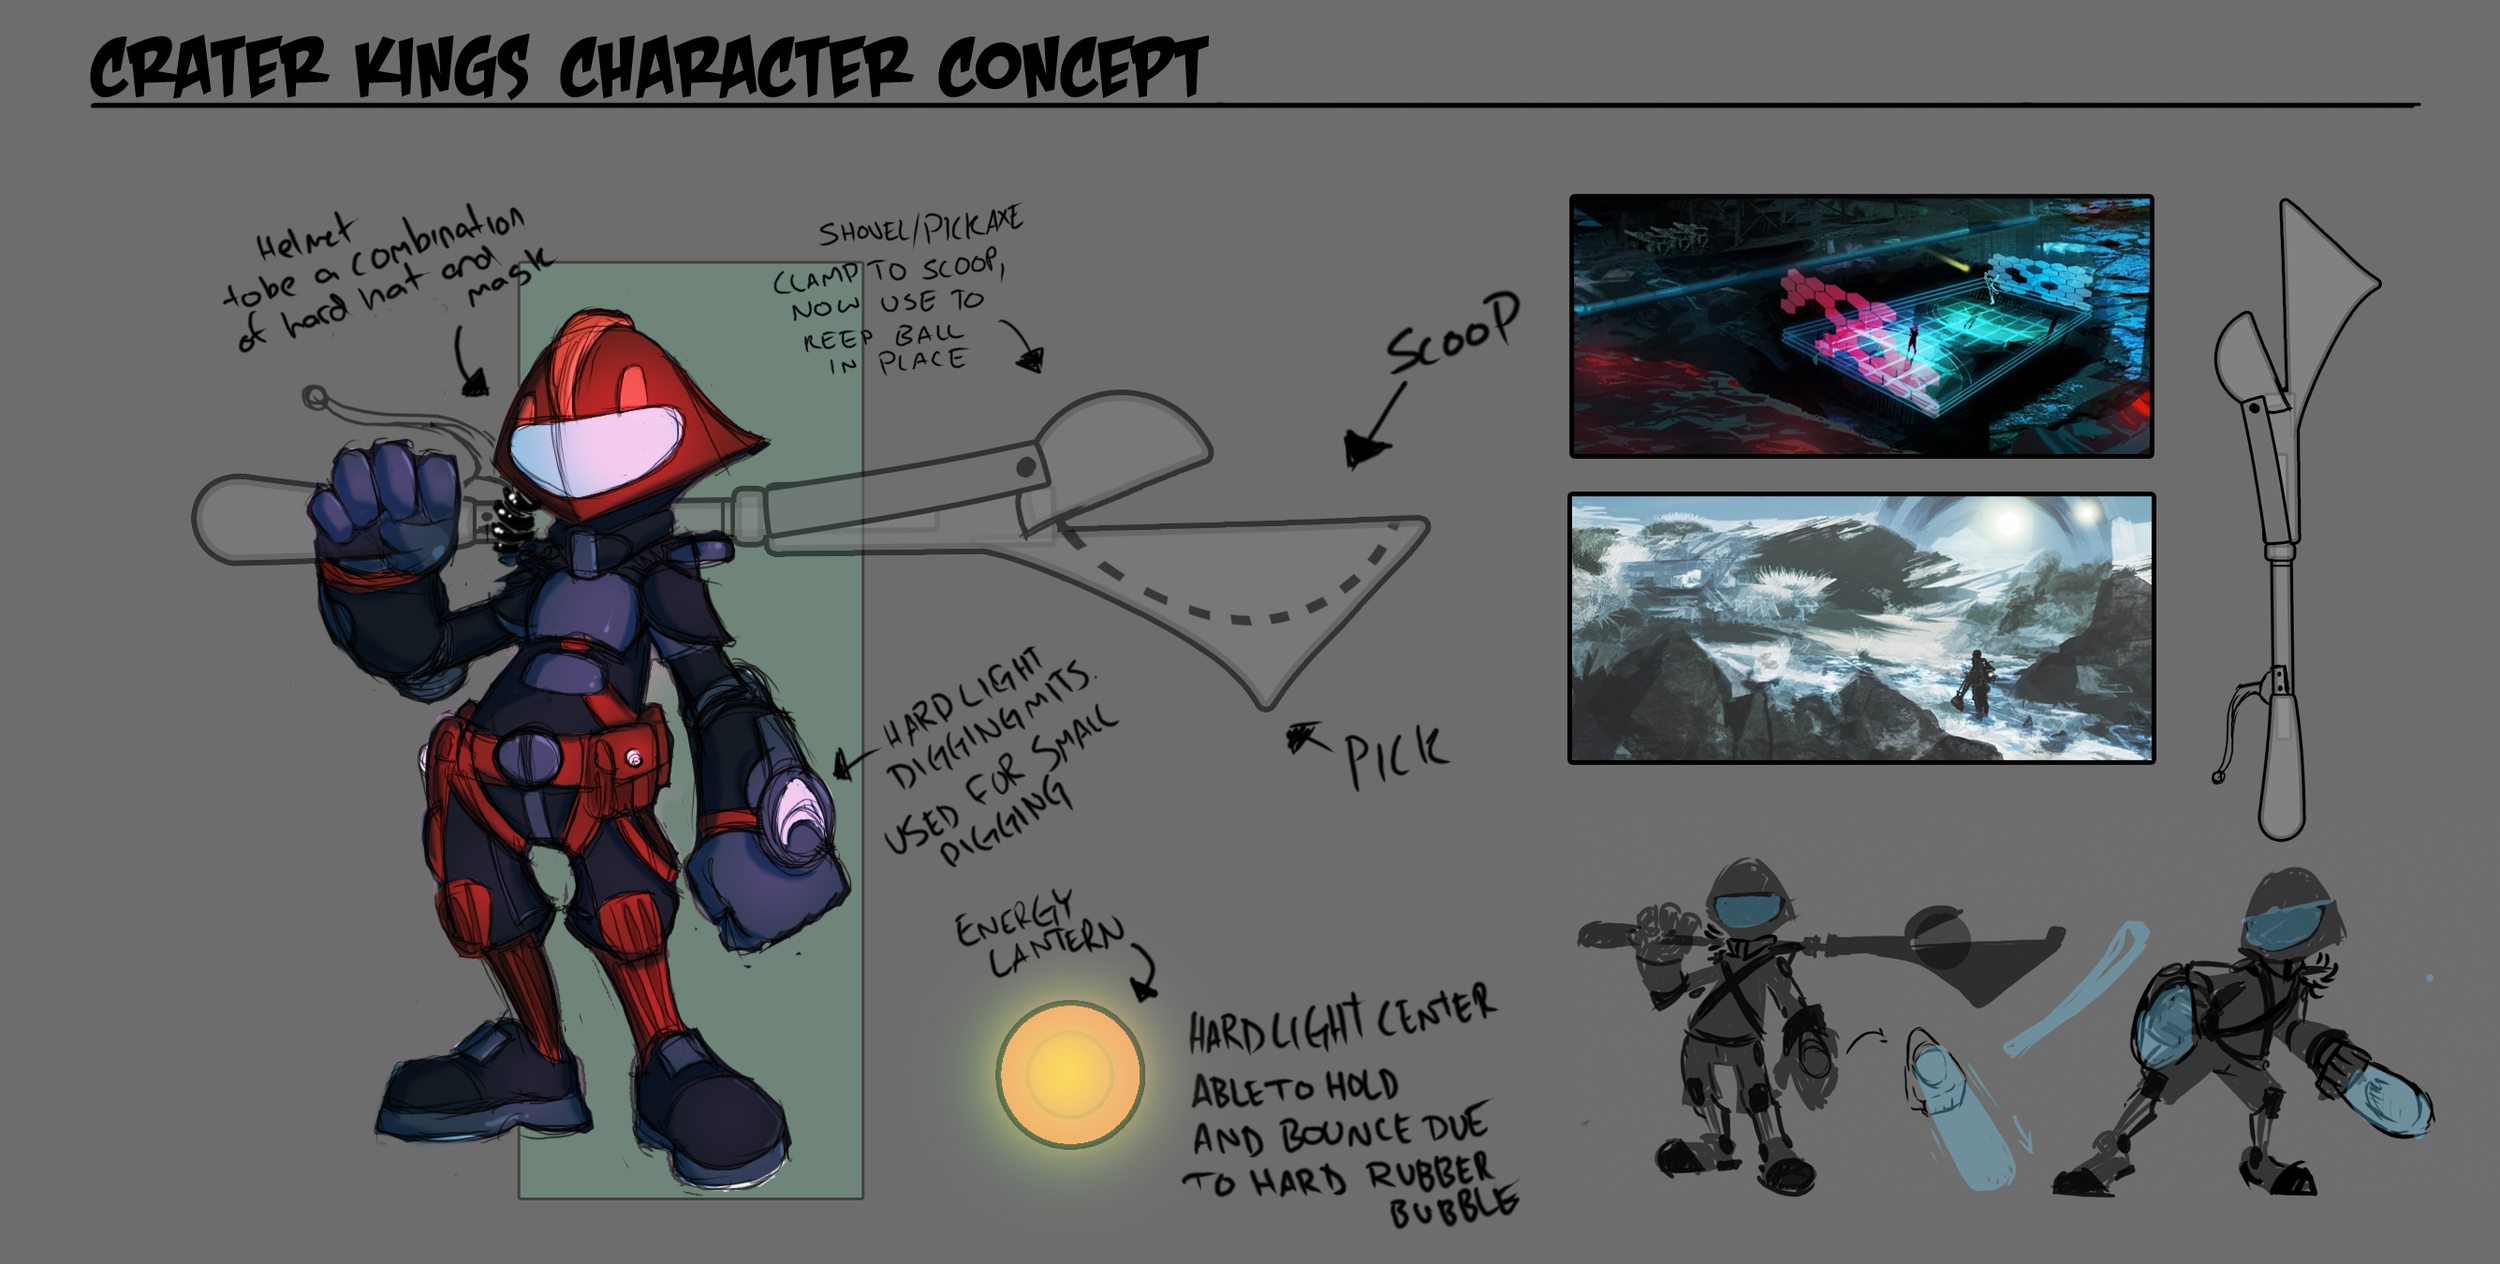 Crater Kings Miner Concept